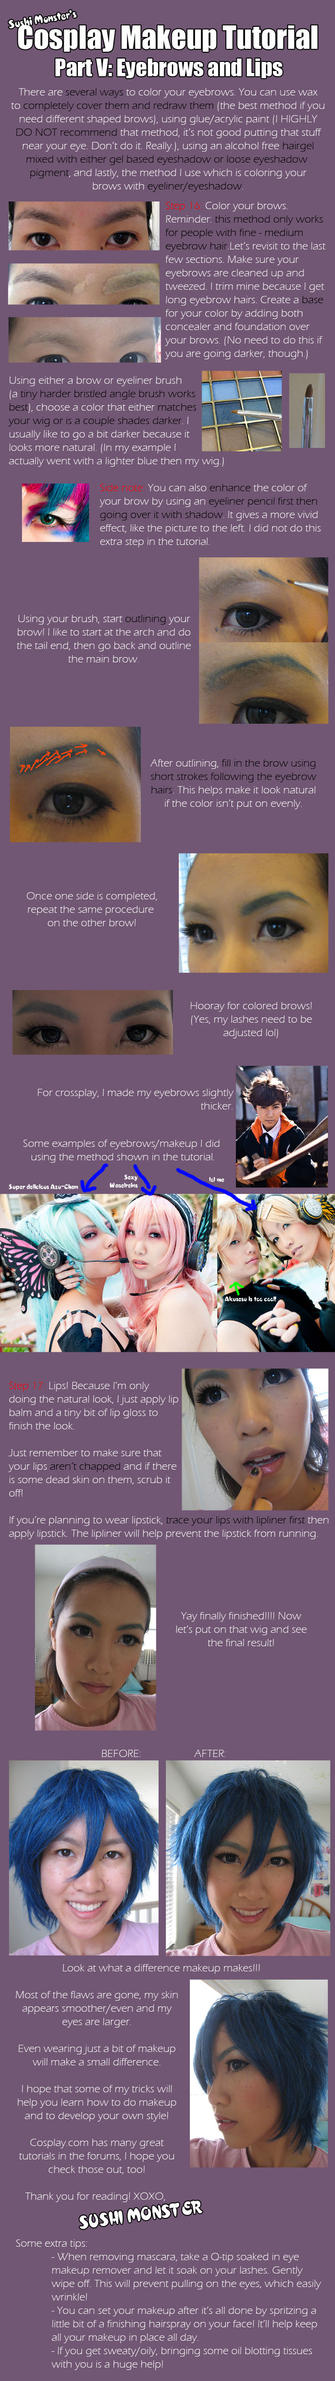 Cos Makeup Tutorial Part V by the-sushi-monster